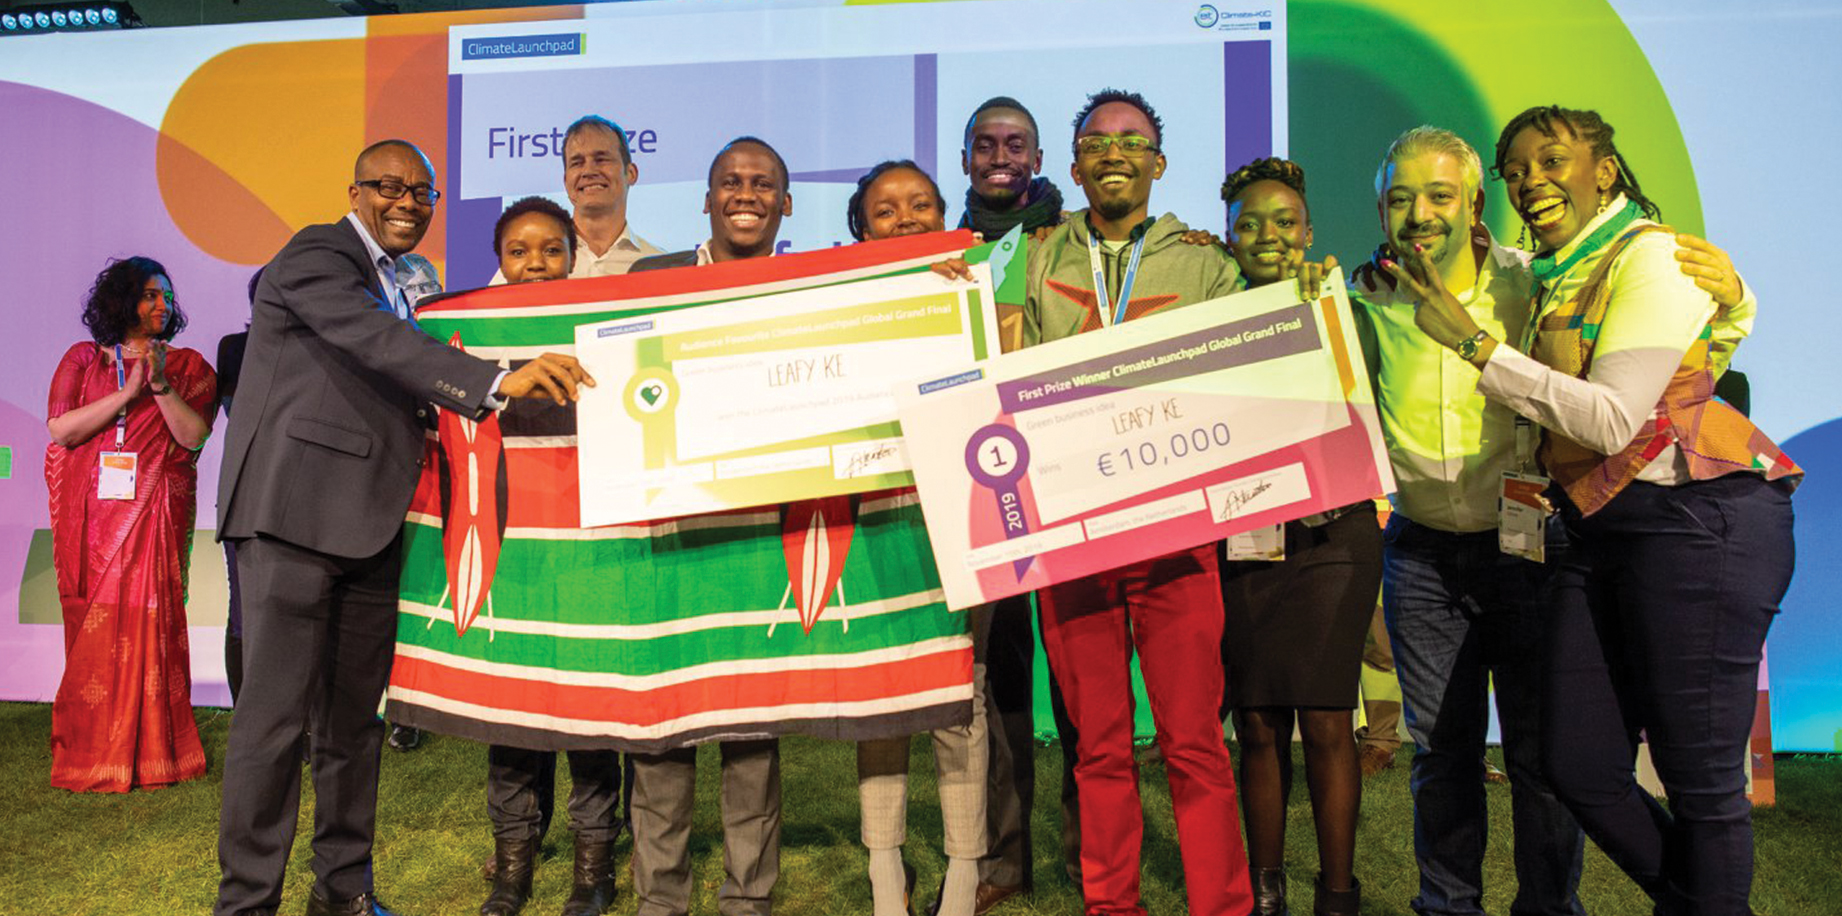 Can global innovation competitions help unearth the next sustainability solution?